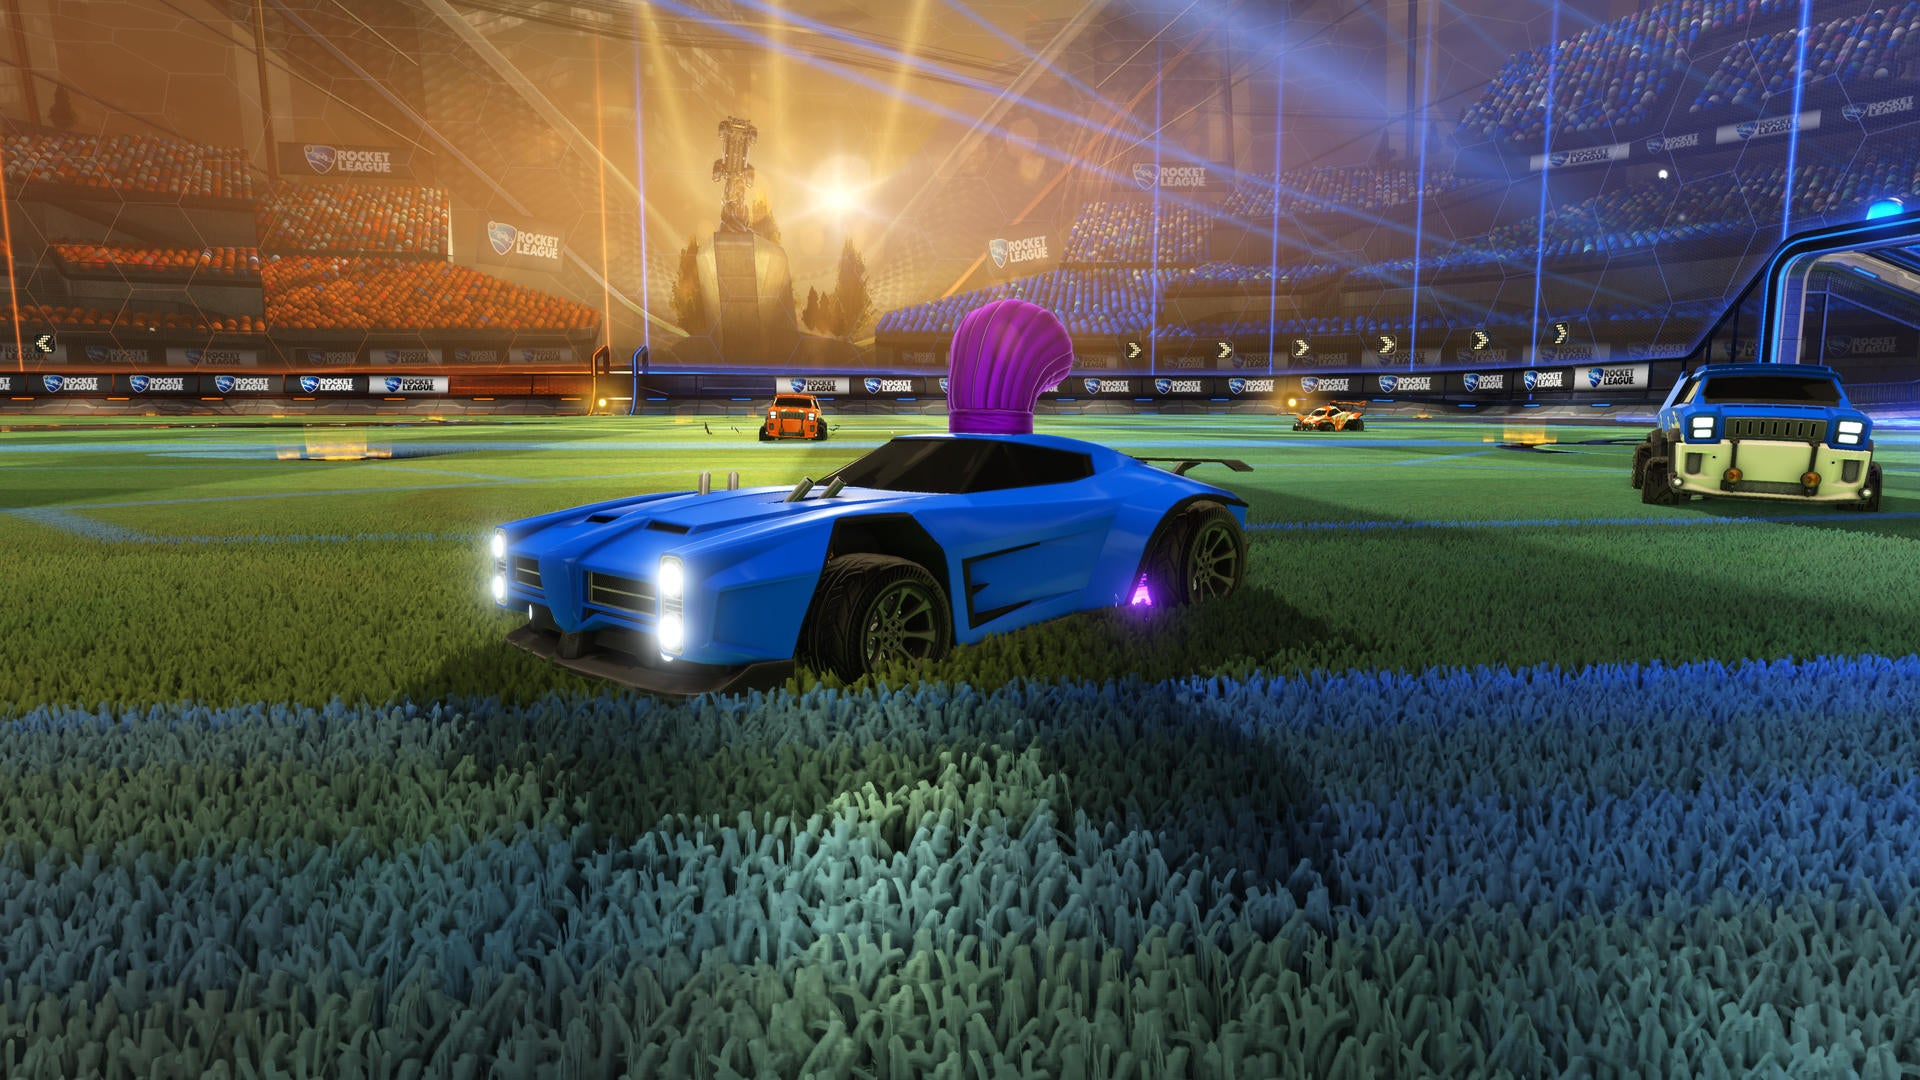 New Painted Items Dropping <br> in Rumble Update Image